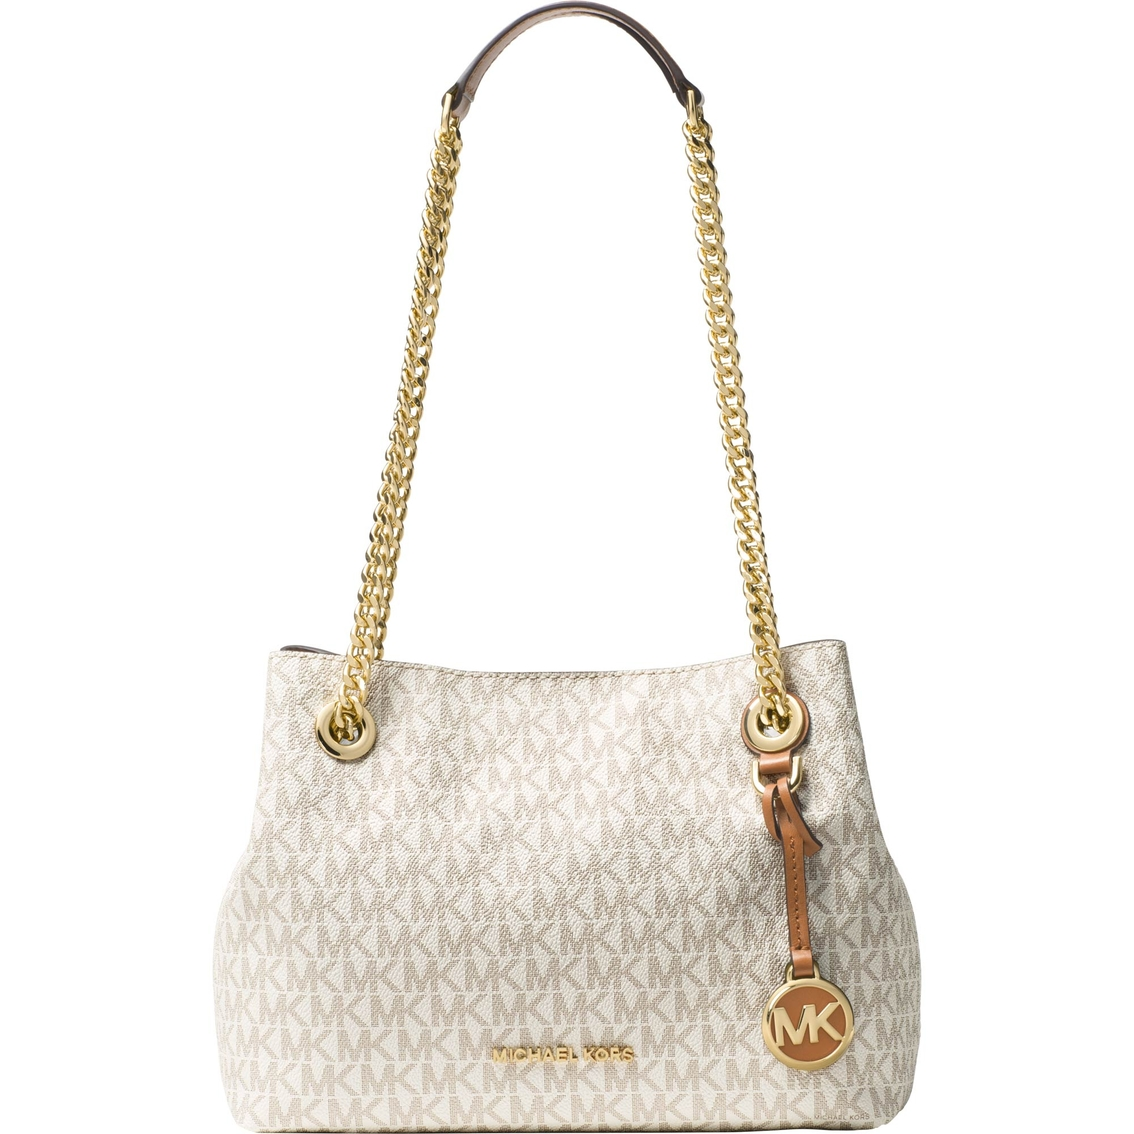 1f2be443da Michael Kors Jet Set Chain Medium Mk Signature Messenger Bag ...